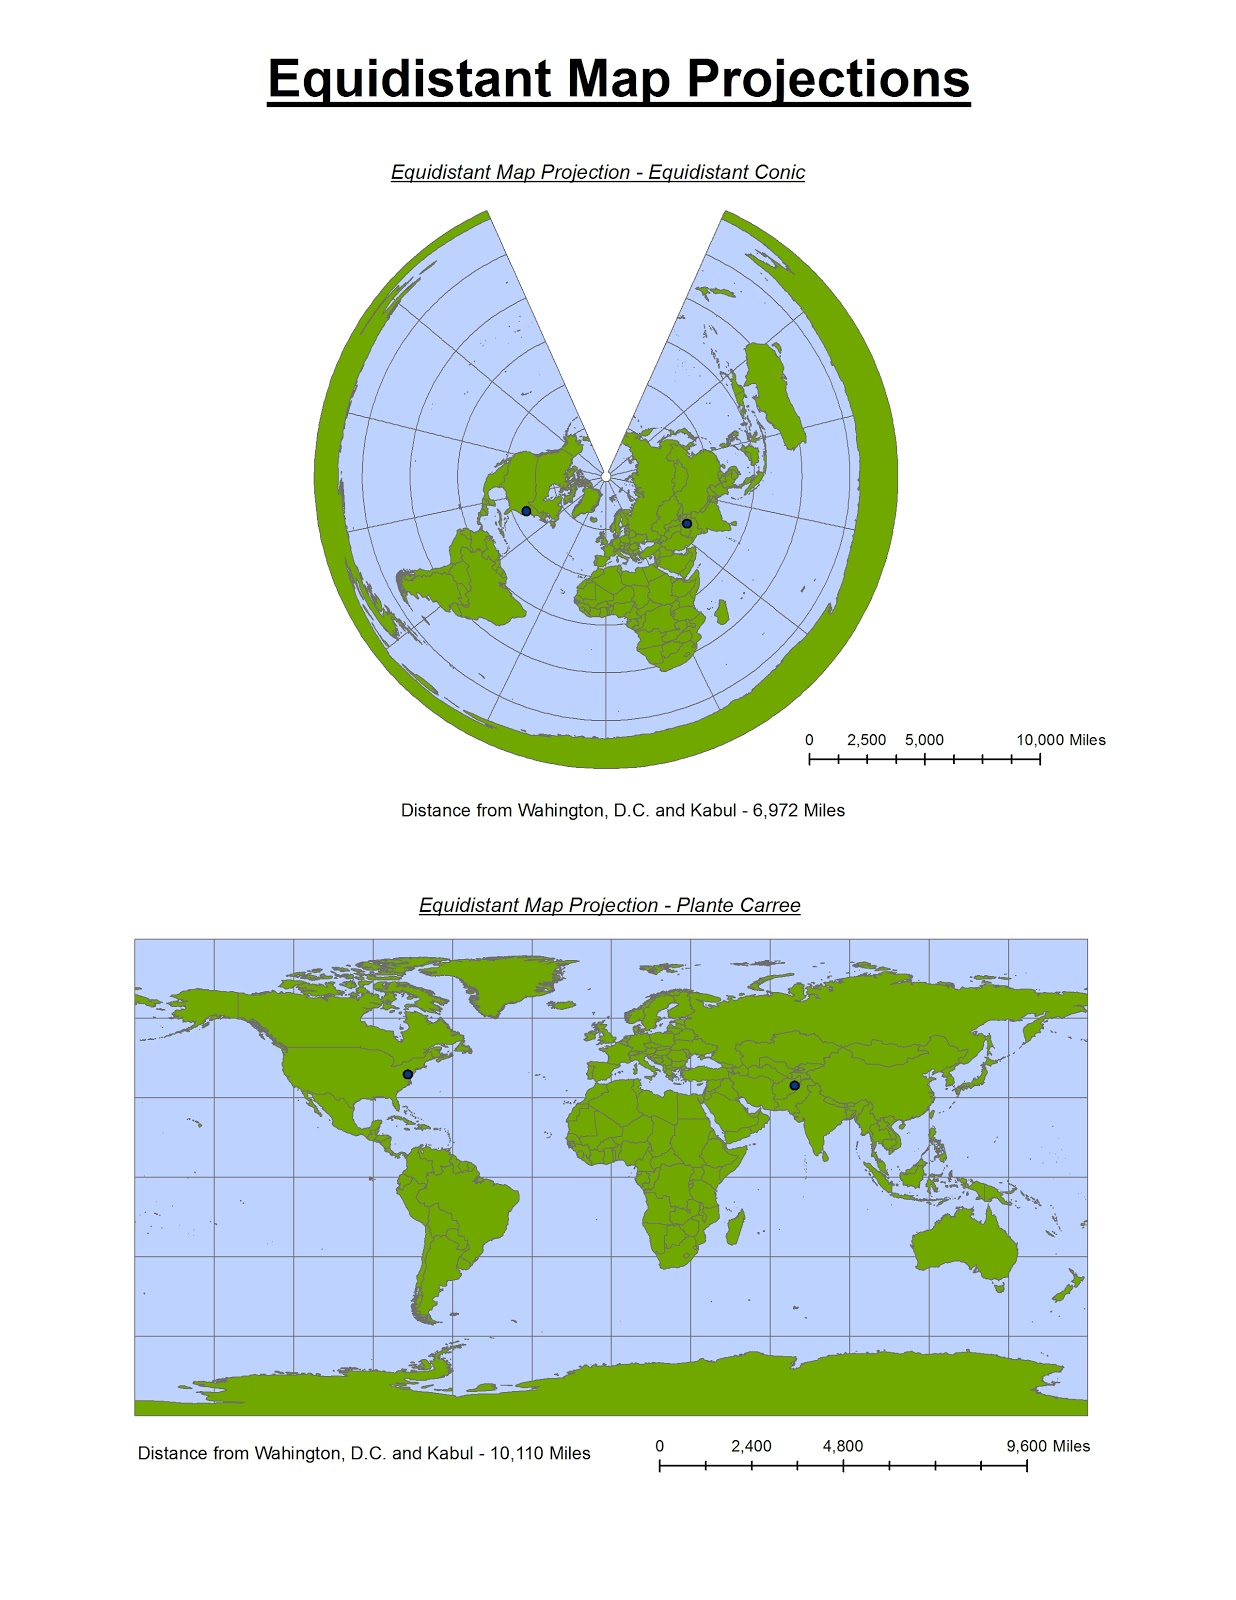 as you can see both over emphasise the area of land forms and distortions get more pronounced with latitude however equidistant maps are useful for